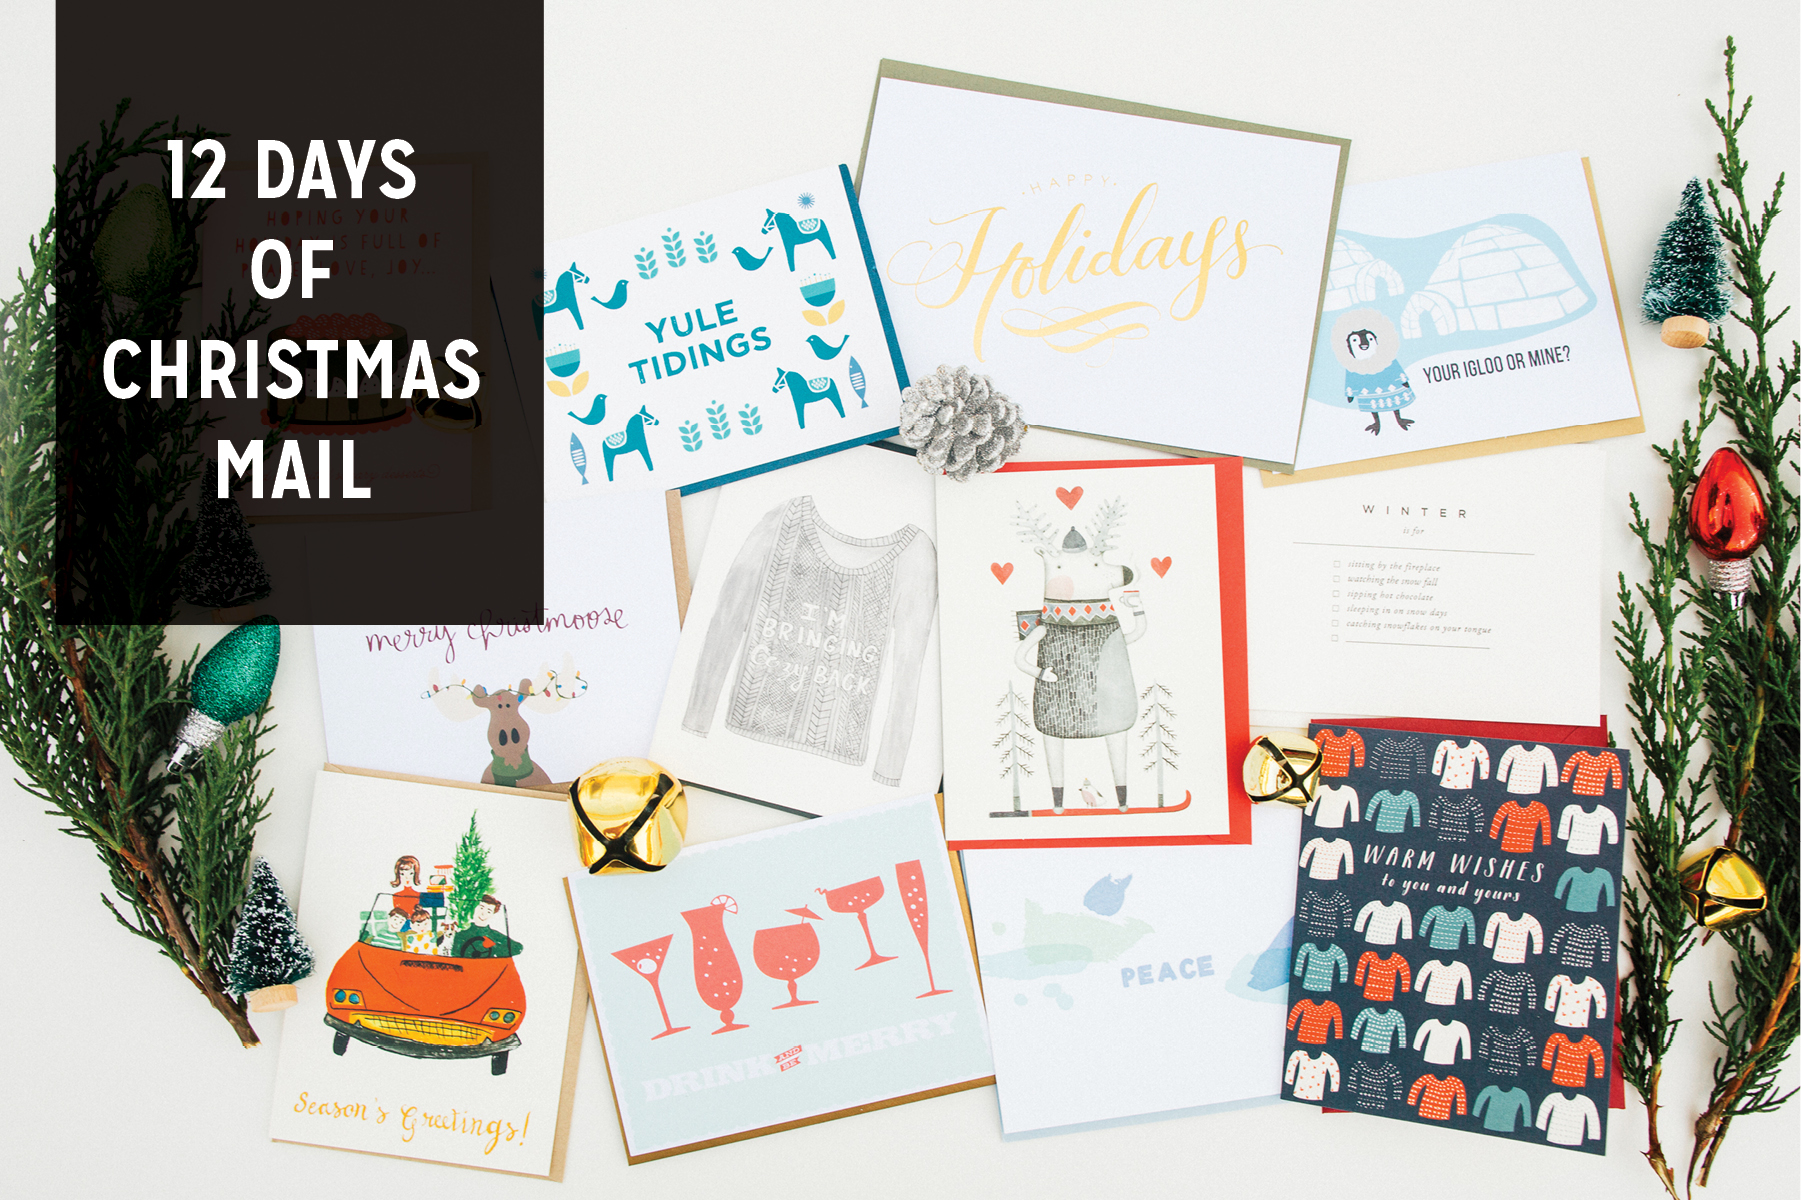 Holiday Greeting Cards at The Paper Craft Pantry, Austin, Texas